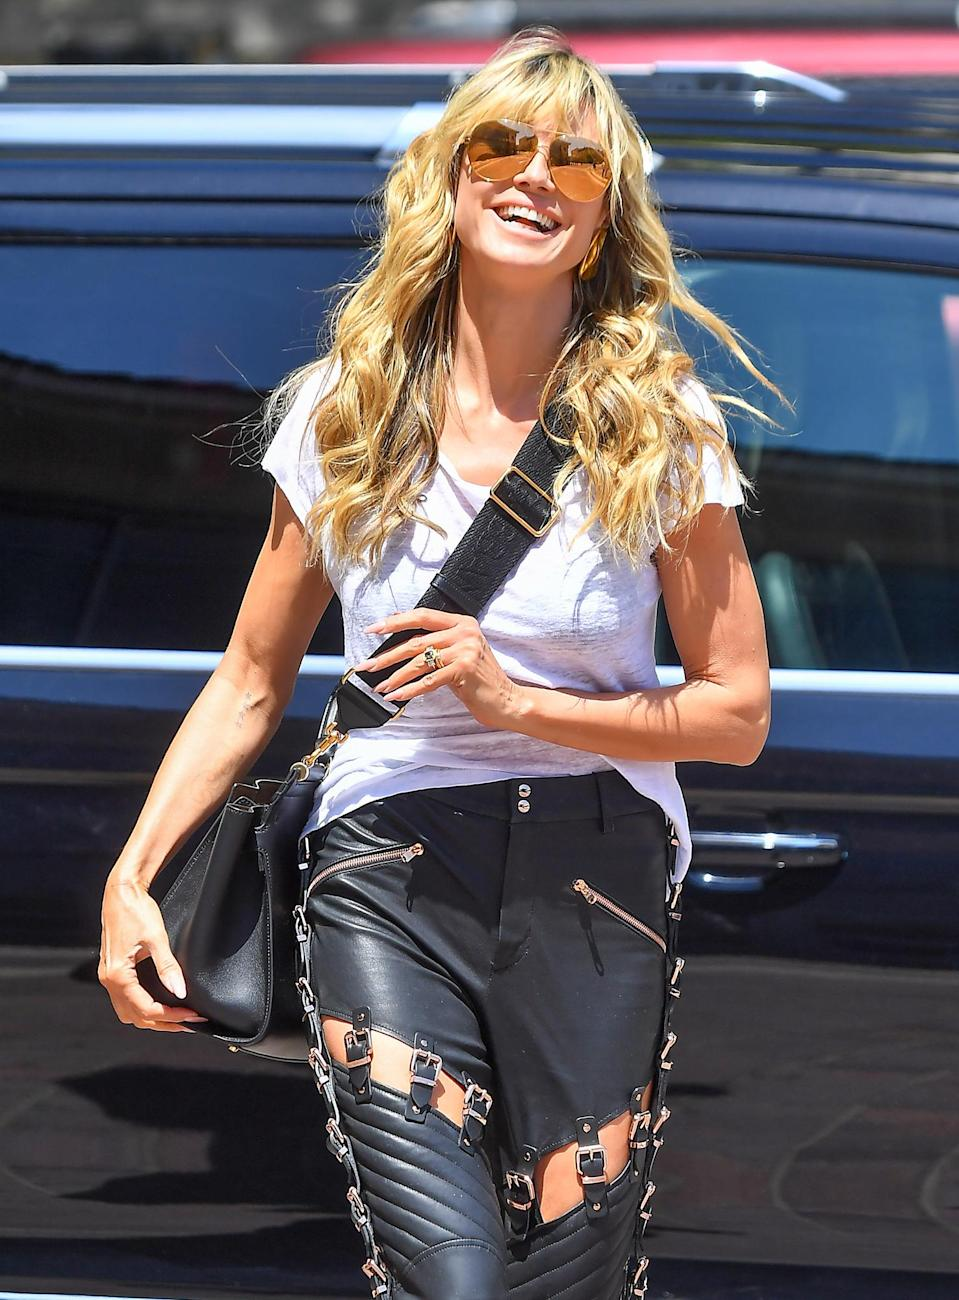 <p>Heidi Klum arrives at the <em>America's Got Talent</em> set in Pasadena on Friday.</p>